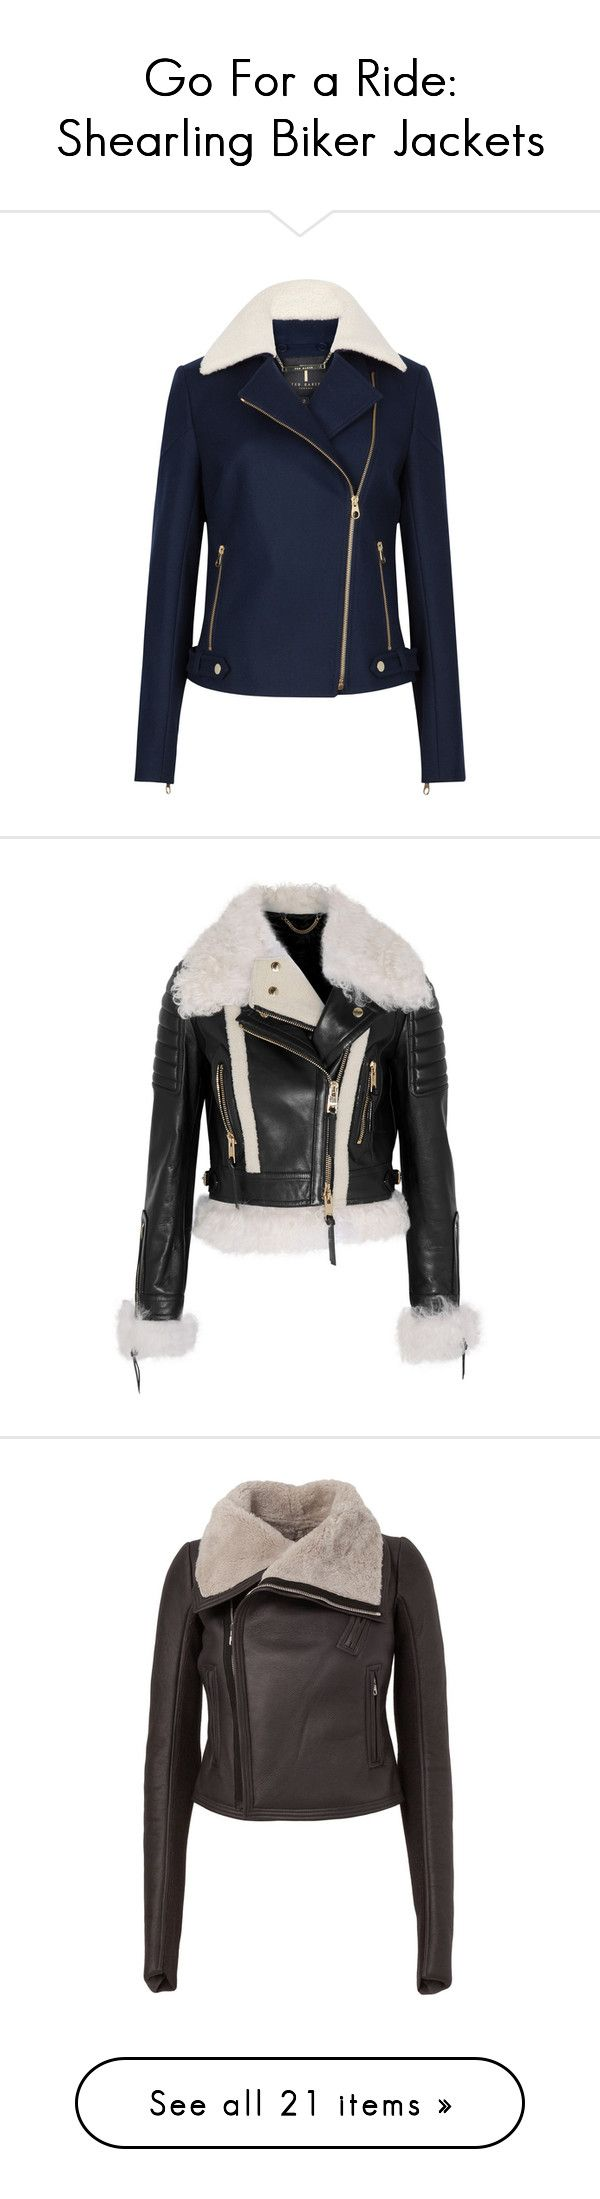 """""""Go For a Ride: Shearling Biker Jackets"""" by polyvore-editorial ❤ liked on Polyvore featuring shearlingbikerjackets, outerwear, jackets, ted baker jacket, moto jacket, ted baker, navy blue jacket, collar jacket, coats and tops outerwear"""